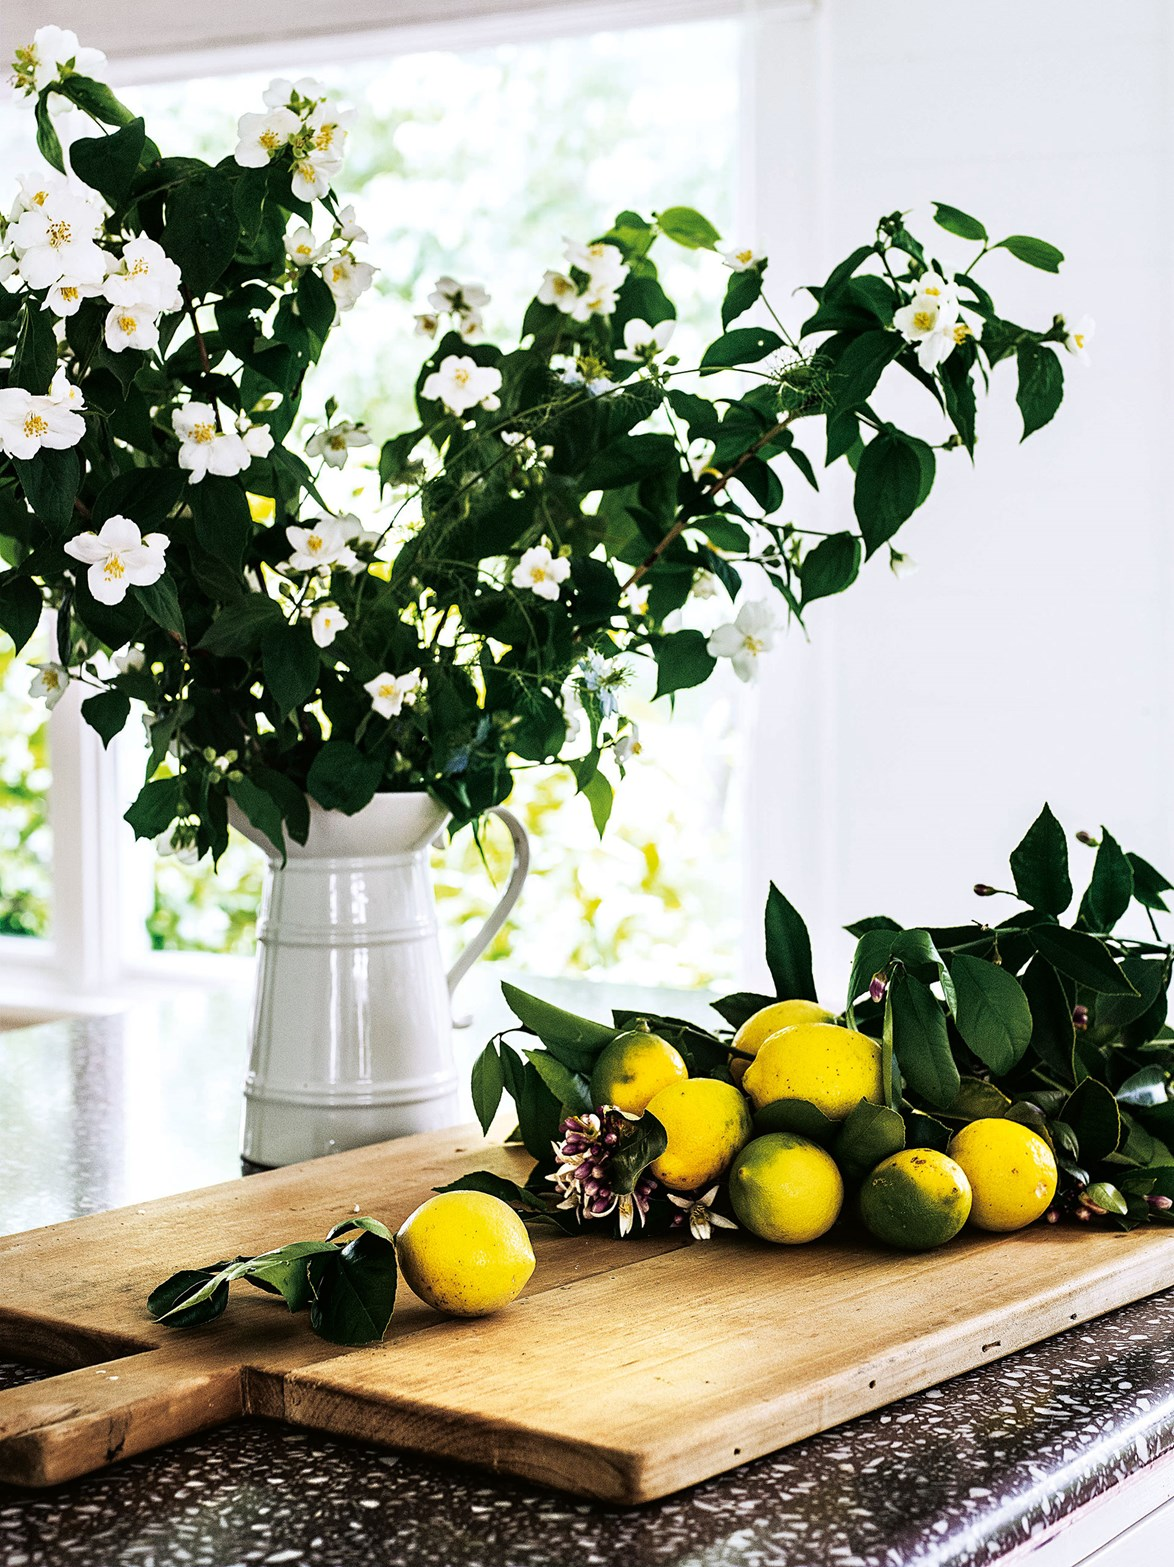 Flowers and fresh fruit en masse is one of the easiest ways to freshen up your kitchen. If you're blessed with a large kitchen bench, opt for tall stems that make a statement.